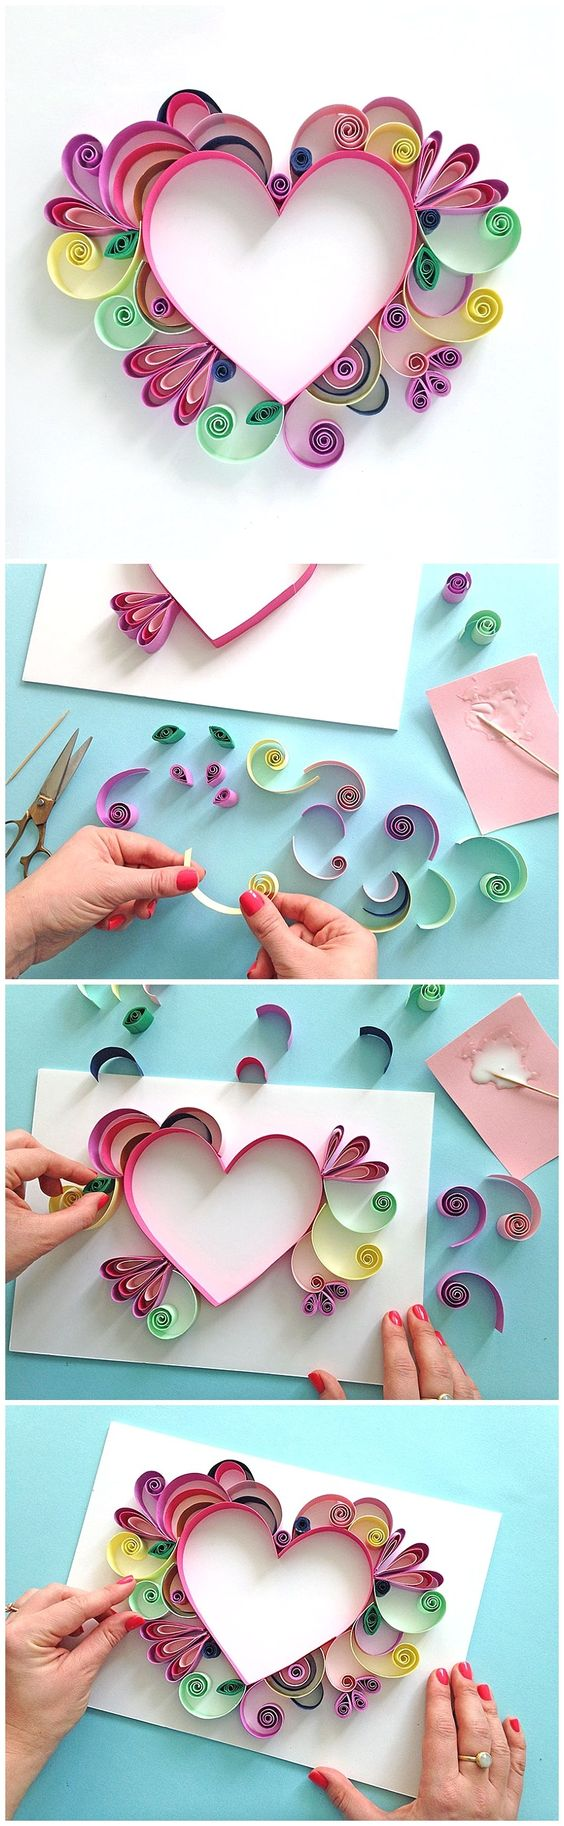 30 Easy Crafts To Make And Sell With Lots Of Diy Tutorials Hative